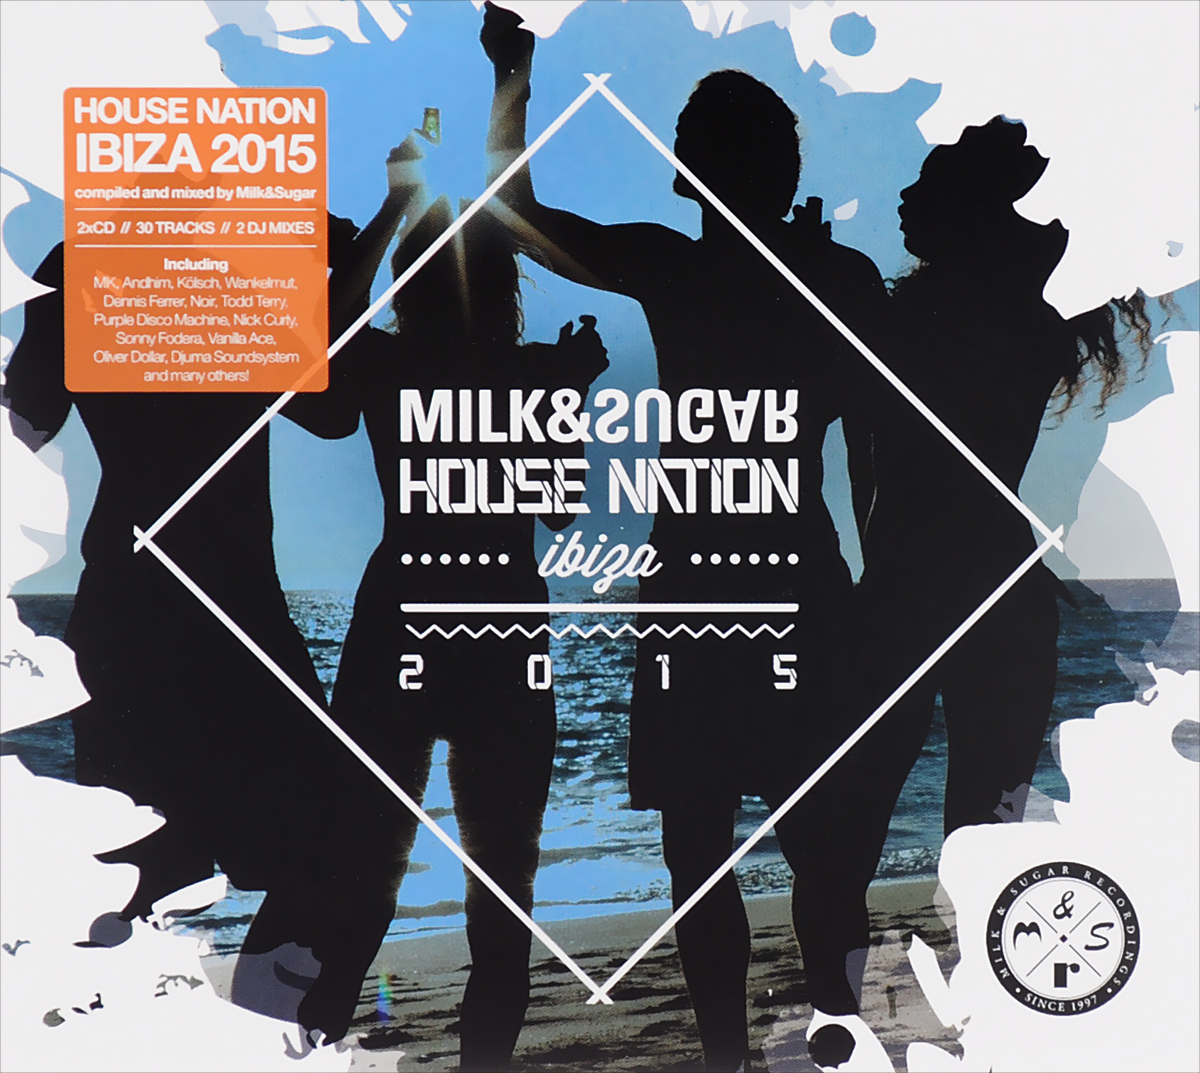 Milk & Sugar. House Nation Ibiza 2015 (2 CD)